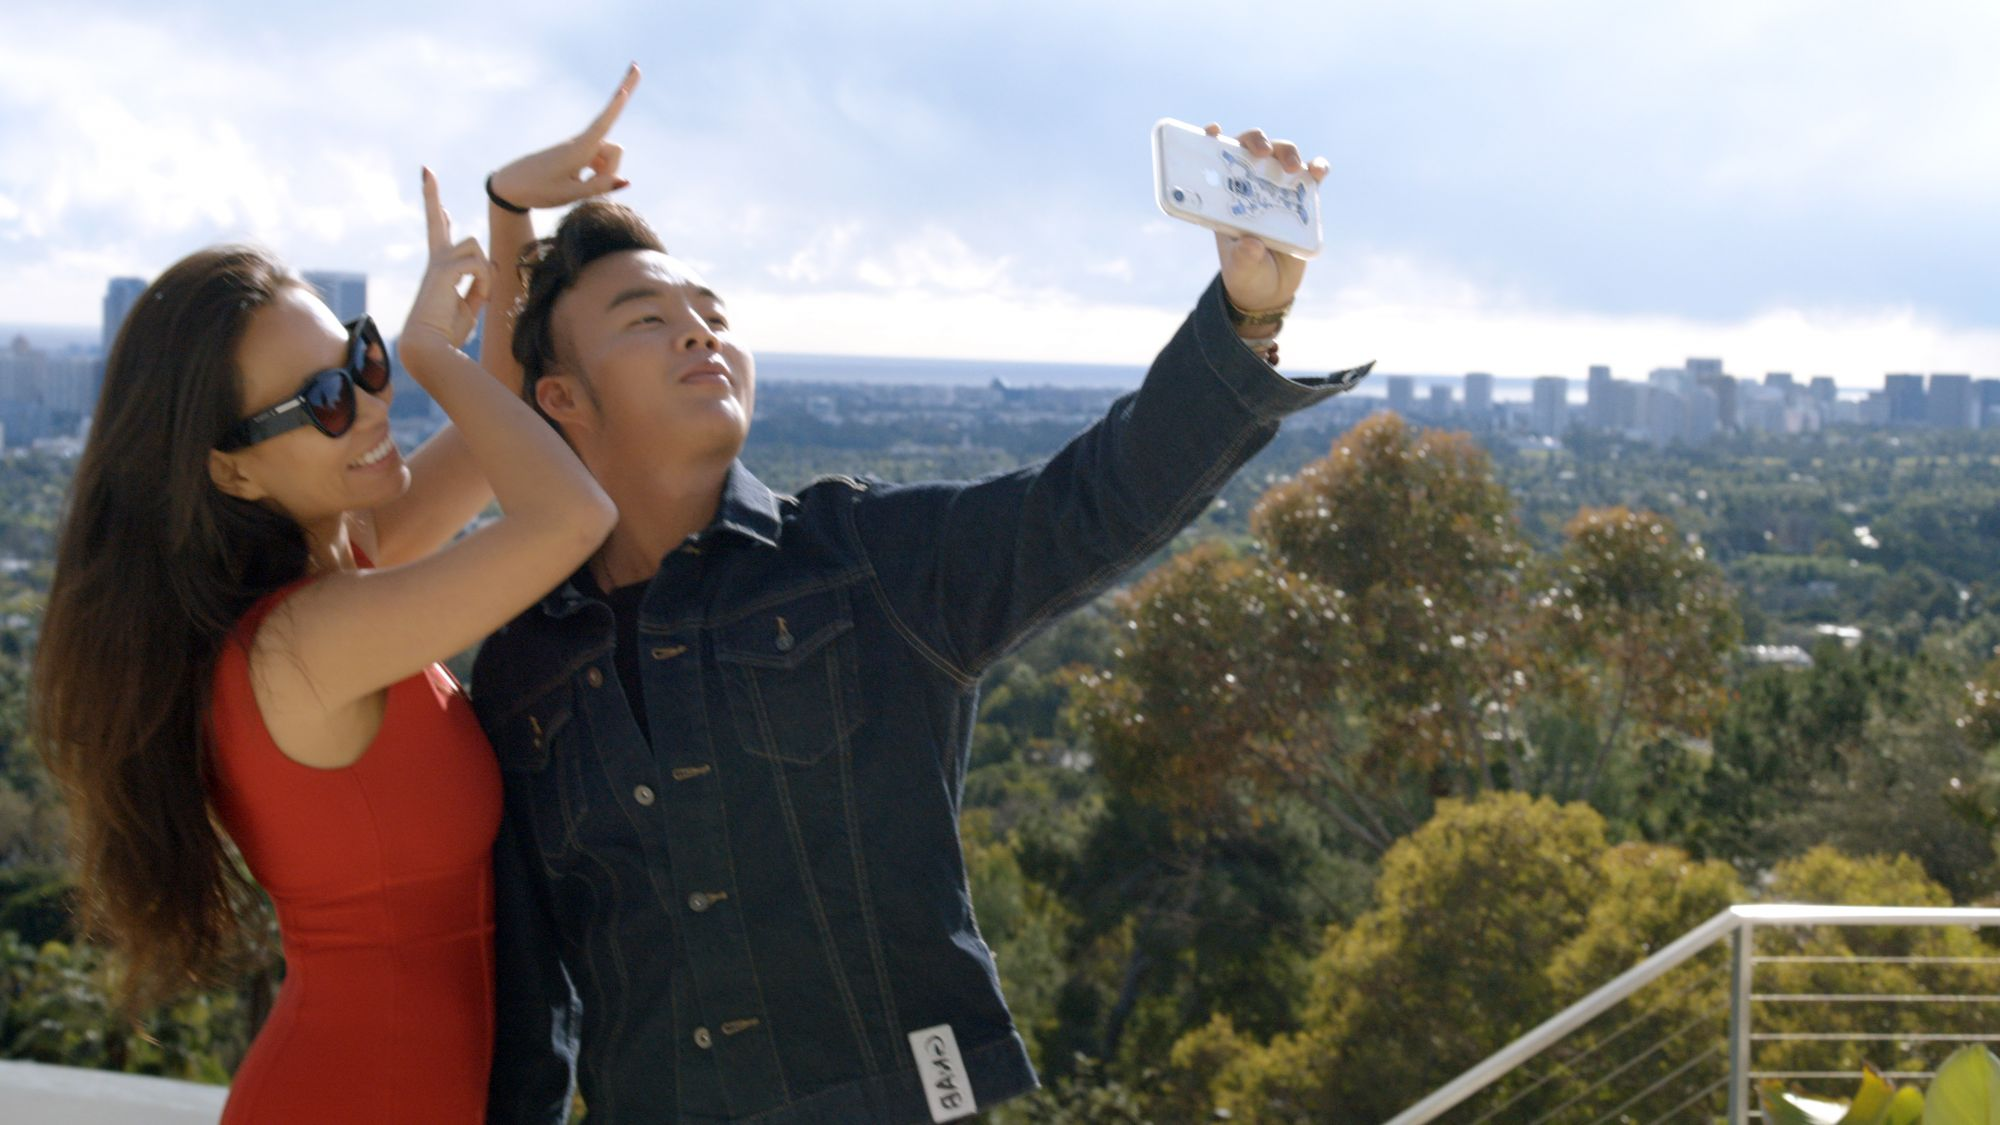 """(L-R) Kelly Mi Li and Kane Lim in episode 1 """"Necklacegate 90210"""" of Bling Empire: Season 1. c. Courtesy of Netflix © 2021"""